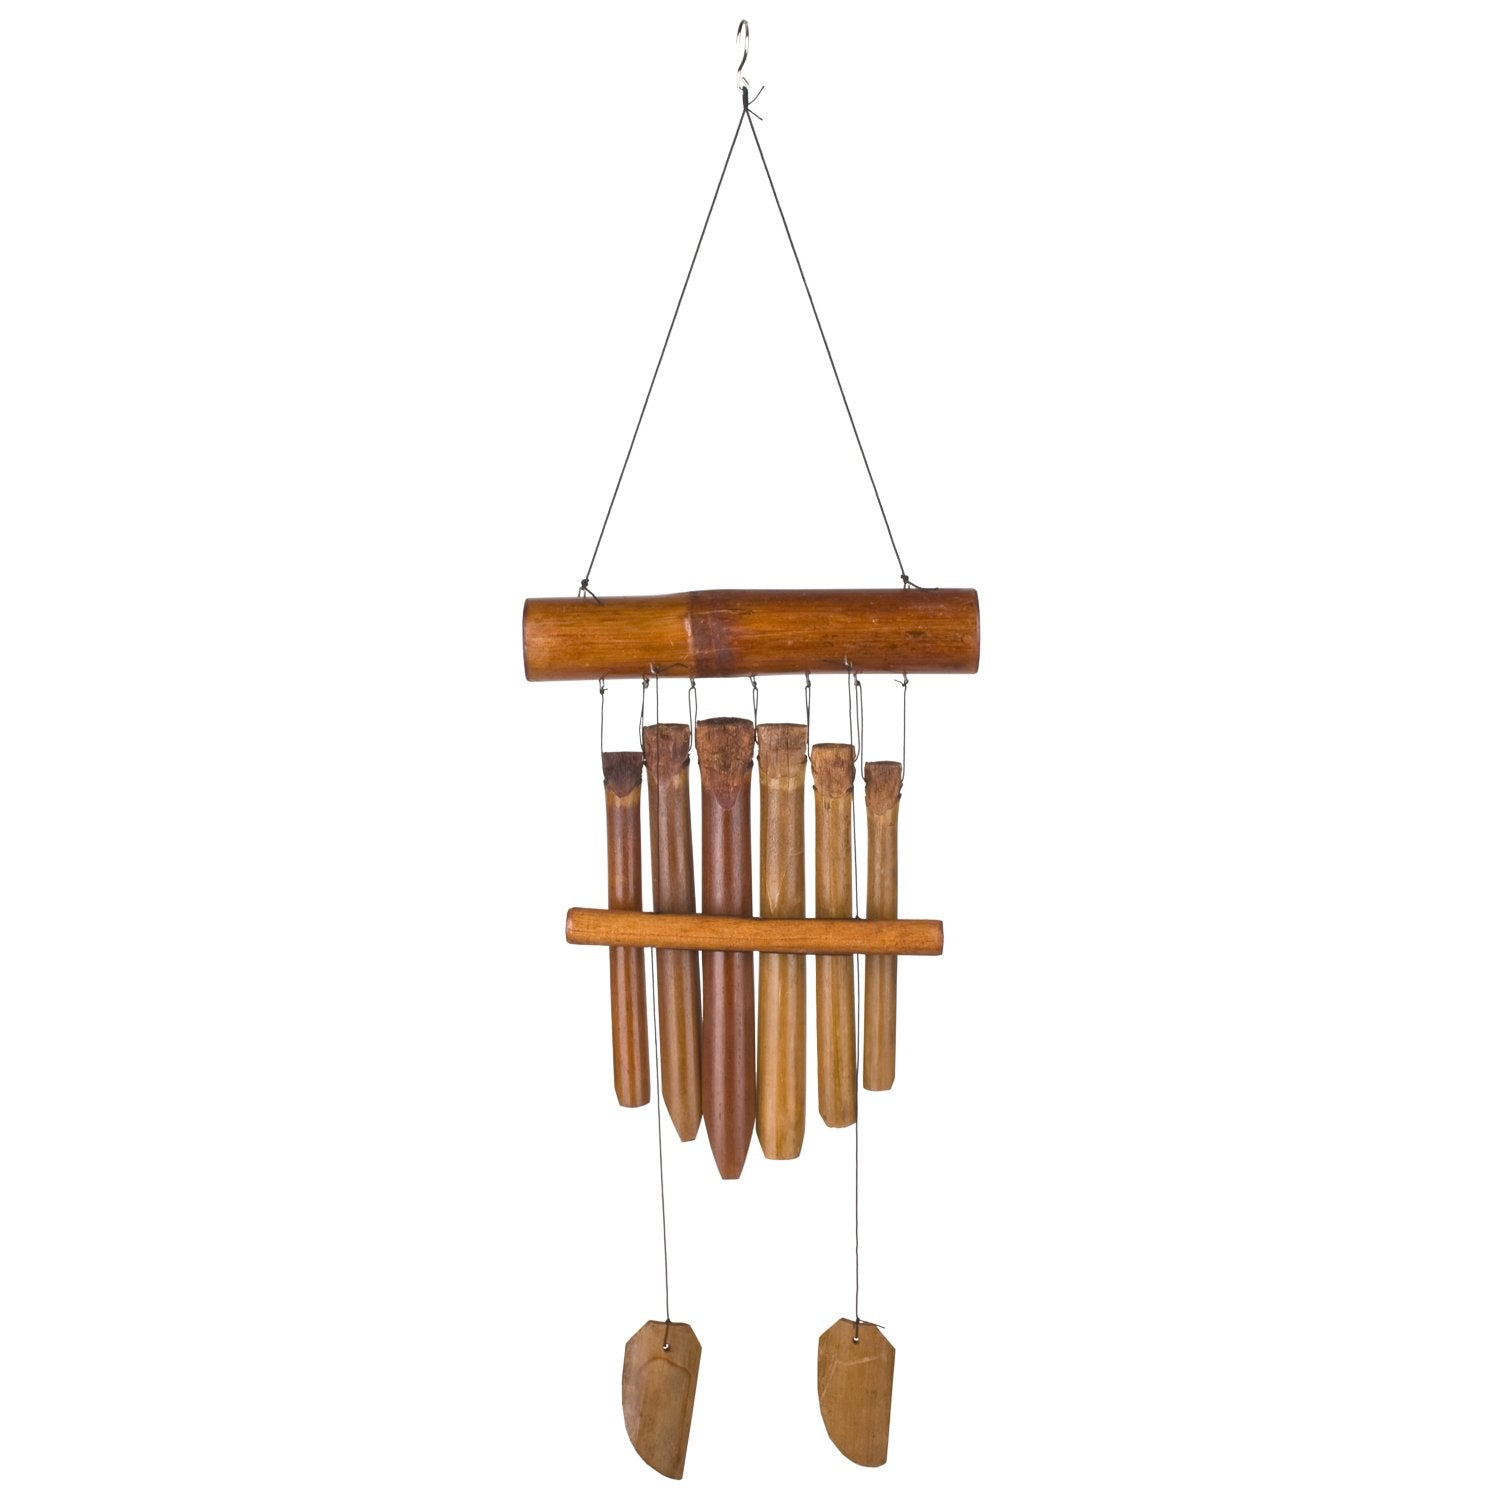 Gamelan Bamboo Chime full product image